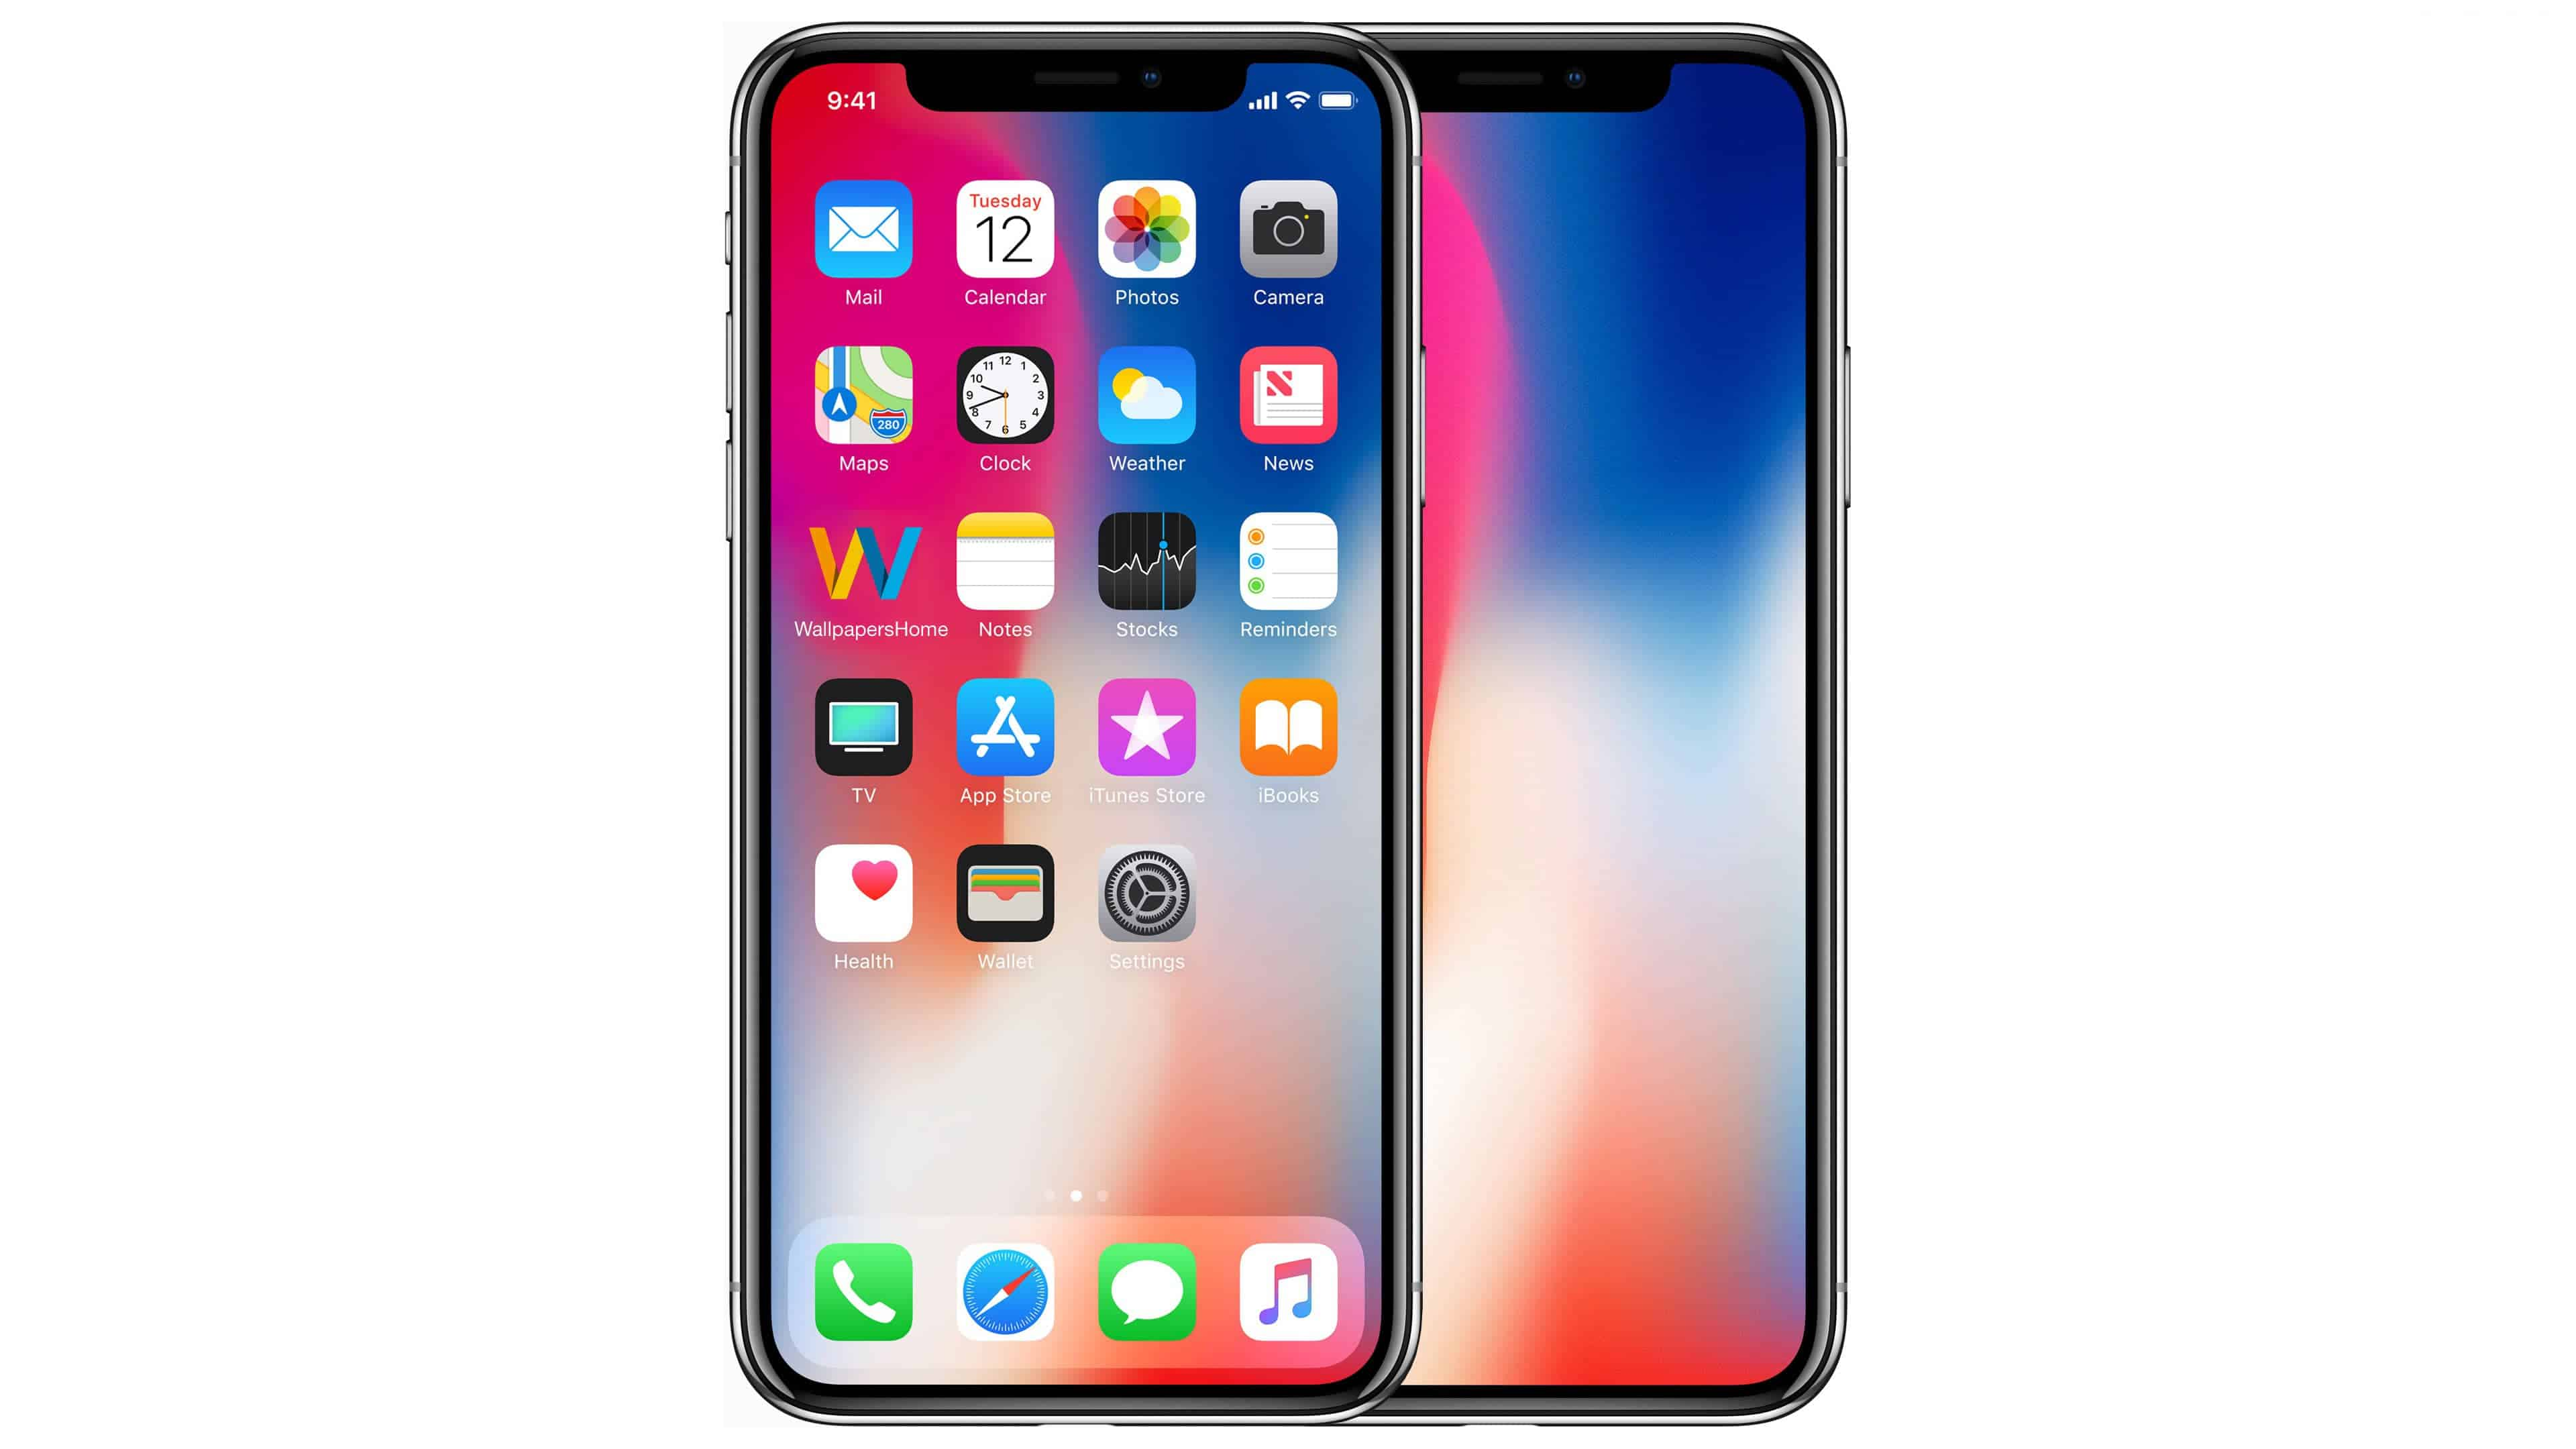 Apple Iphone X Front Uhd 4k Wallpaper Pixelz Cc